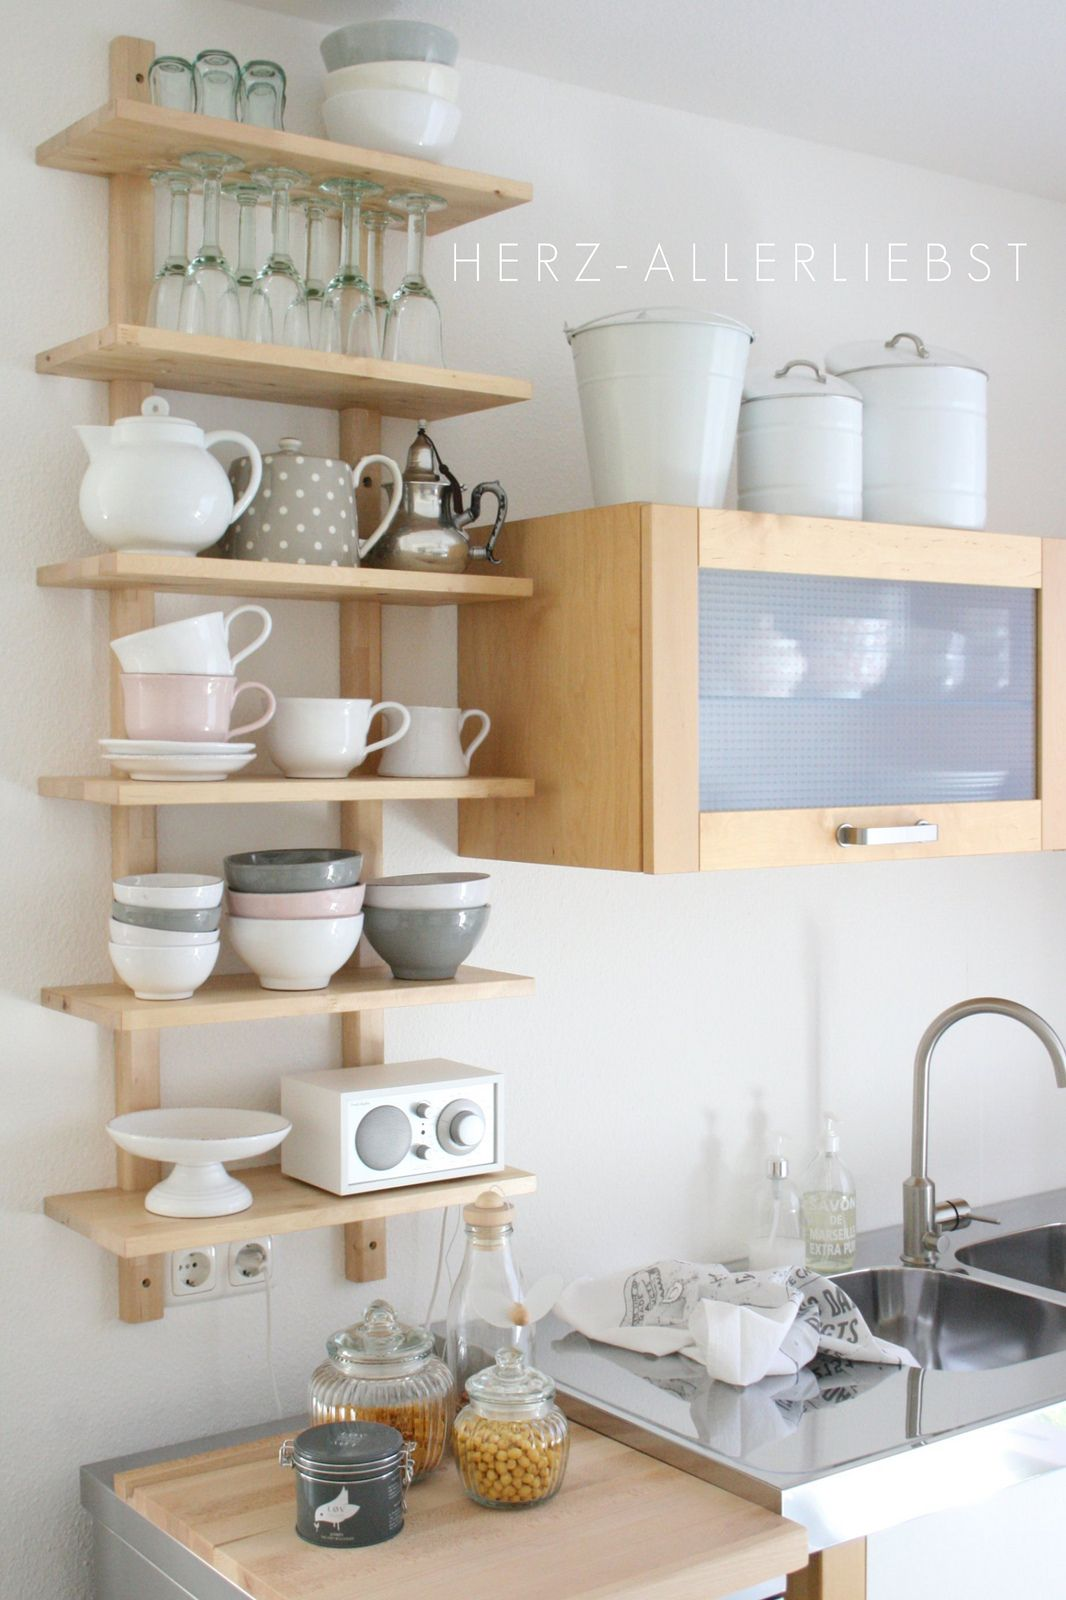 Open Kitchen Shelving Like This Except Not As Many Shelves I Would Stack Things Like Our Bowls Mugs And Other Kitchen Decor Kitchen Interior Small Kitchen